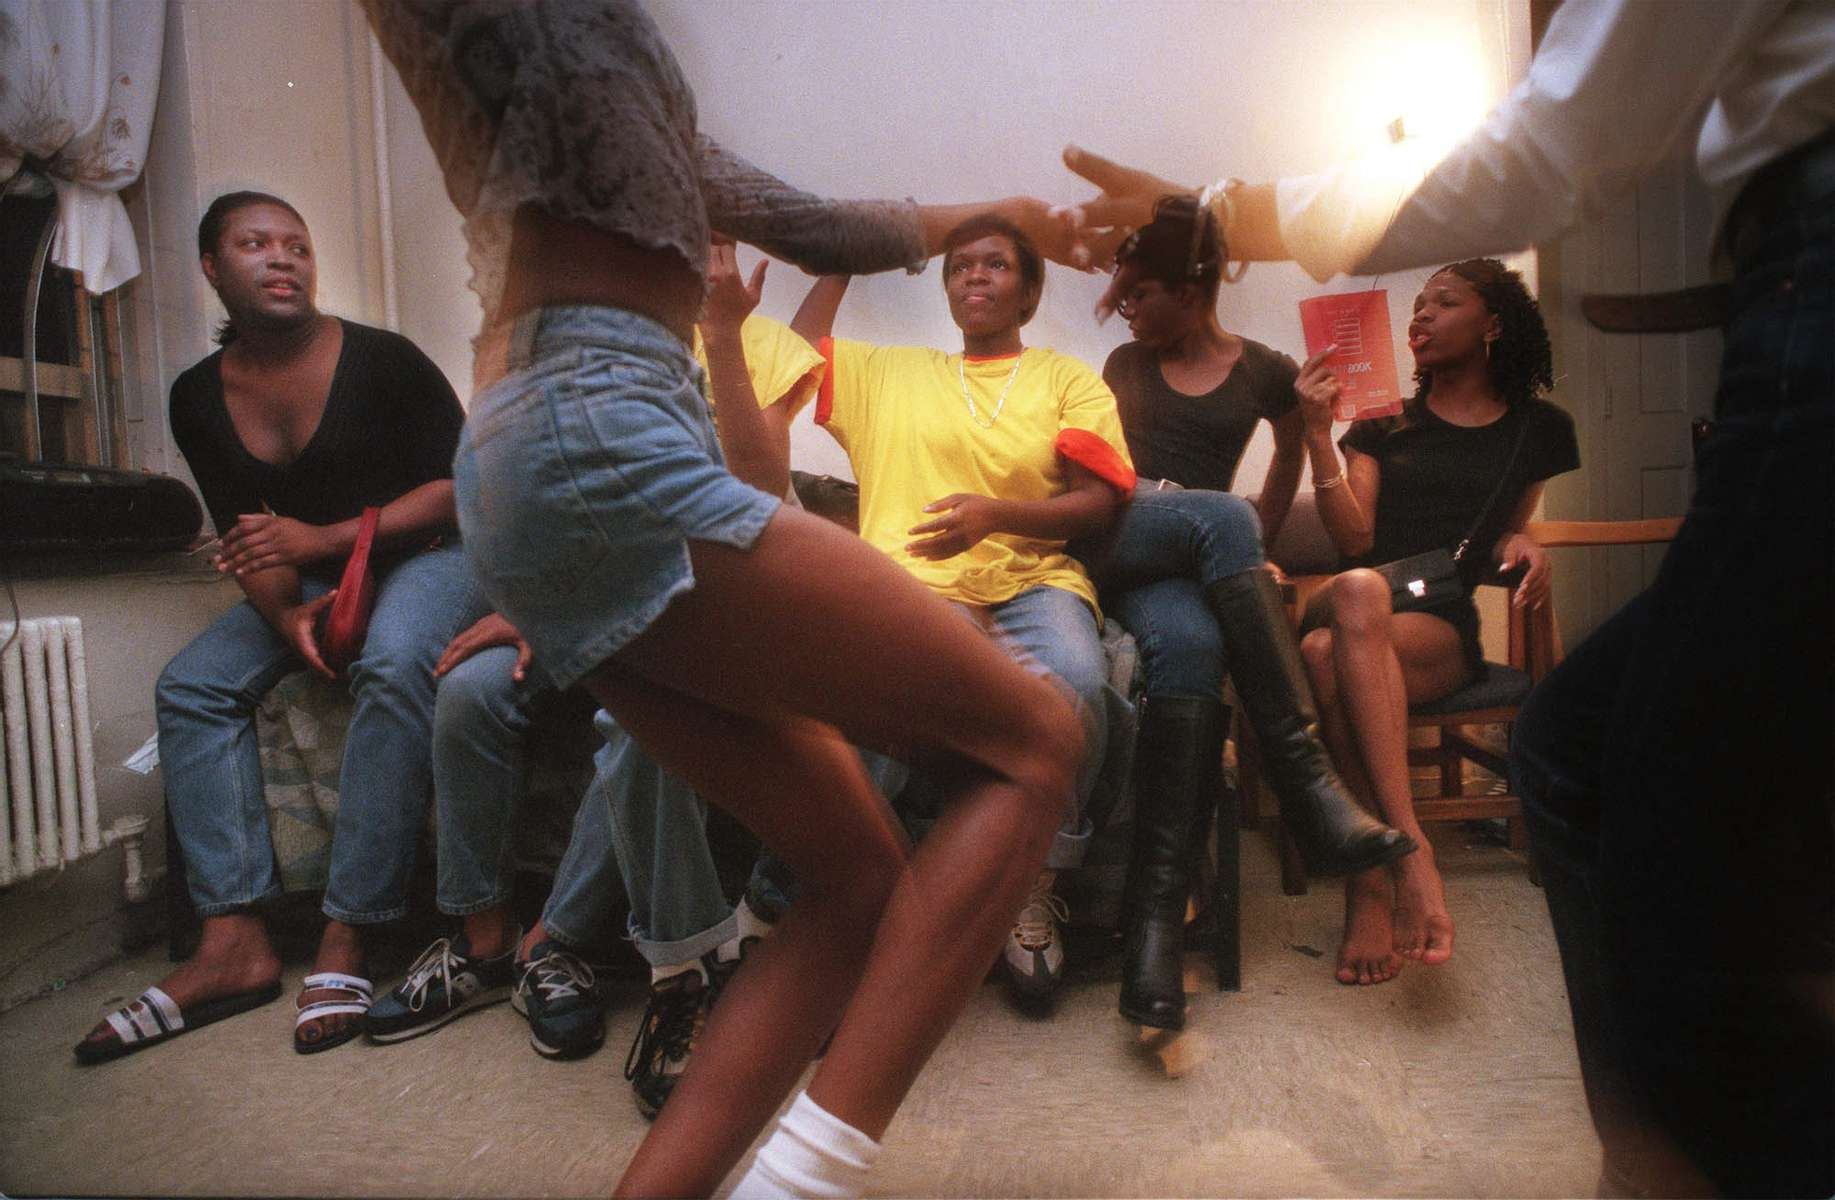 Trans women gather and perform for each other one Thursday afternoon at Kima's apartment in the projects in Harlem.  They dance for each other while practicing for transgender balls which take place throughout the city during the year.